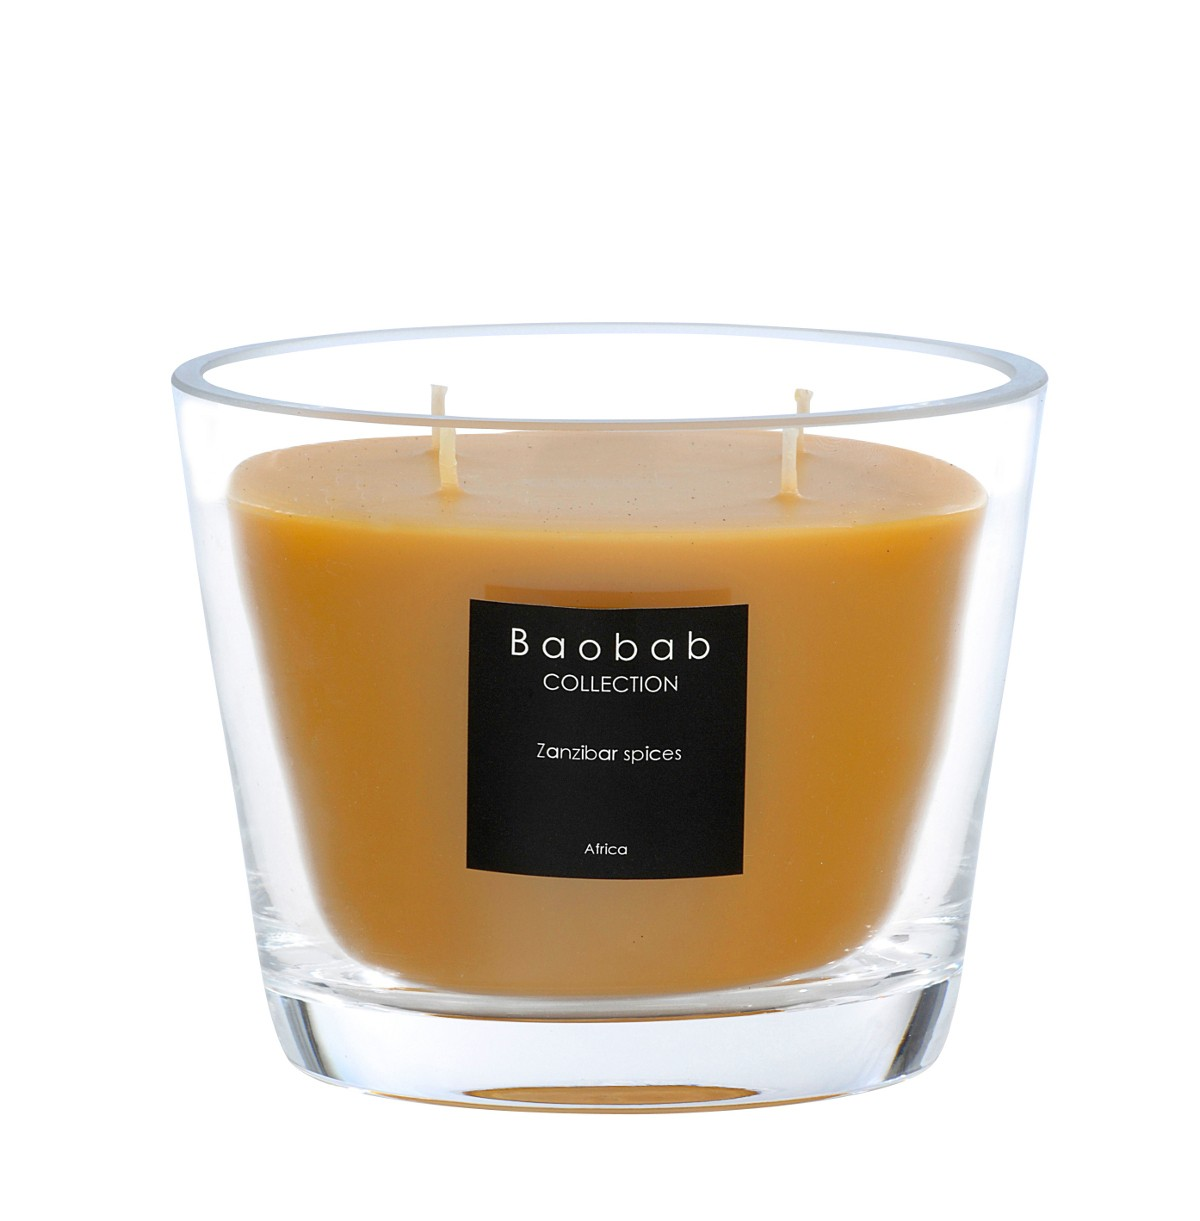 Bougie Baobab Paris Bougie Max 10 Zanzibar Spices De Baobab Collection